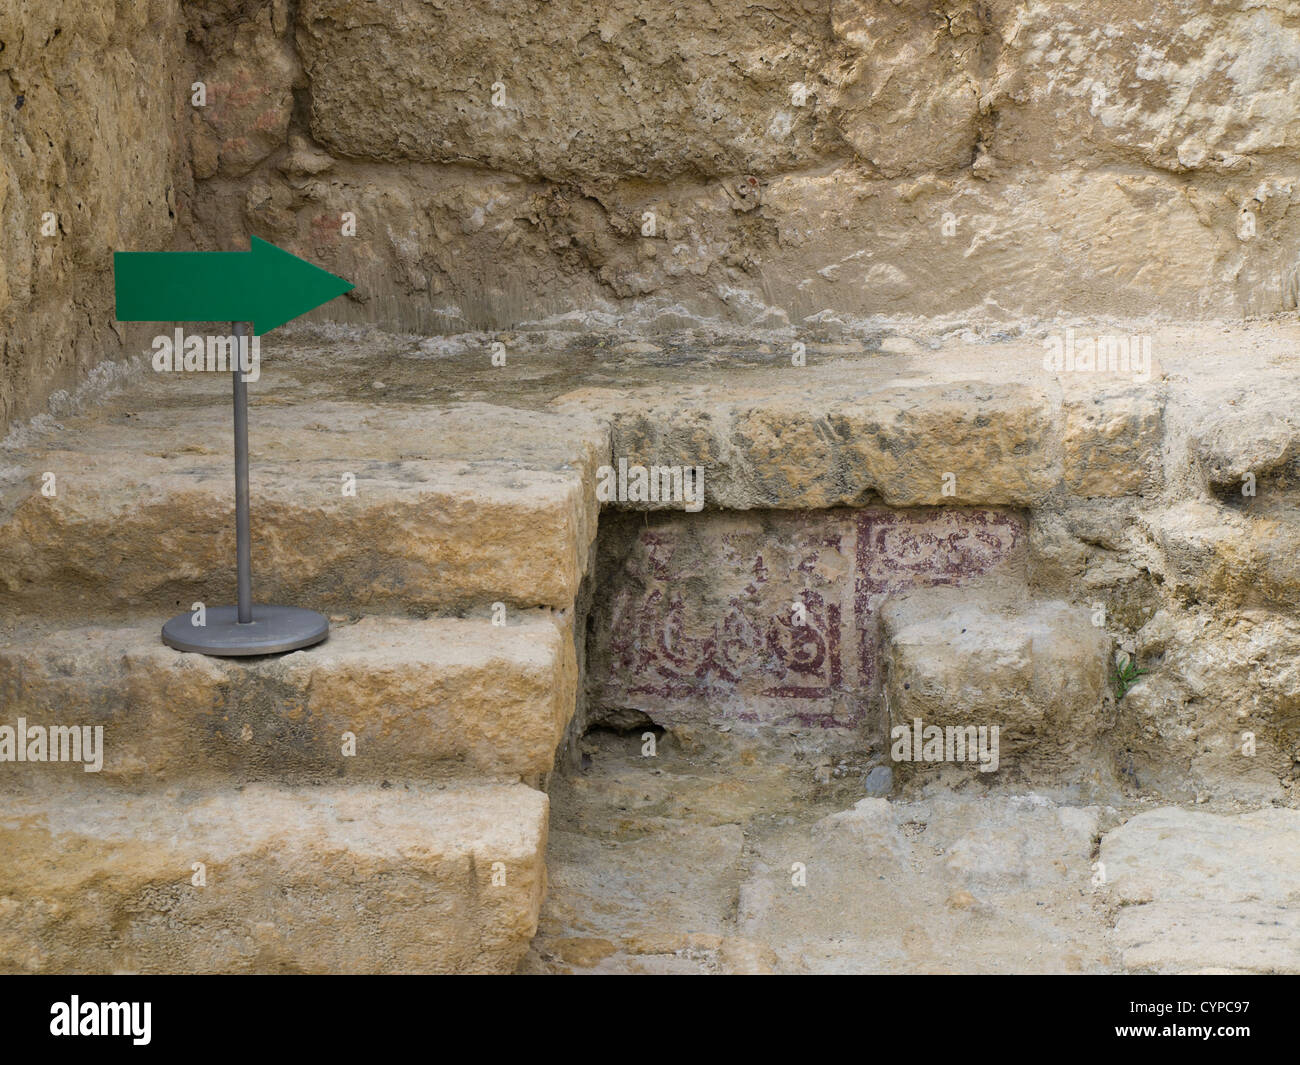 Ruins of the Moorish palace Medina Azahara Andalusia, 15 min. from the center of Cordoba, detail of green arrow - Stock Image